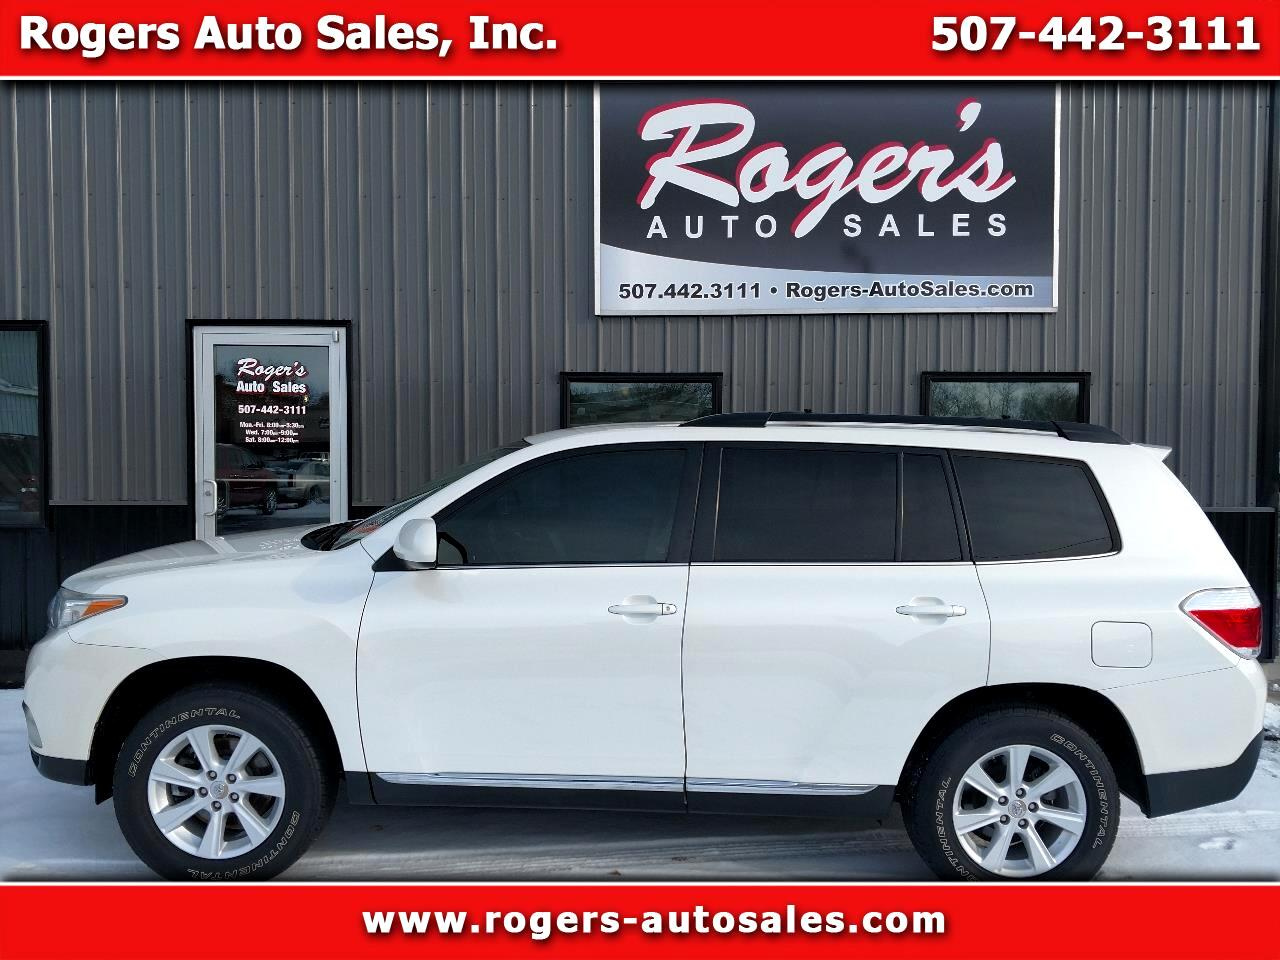 2011 Toyota Highlander V6 4WD with Third Row Seat